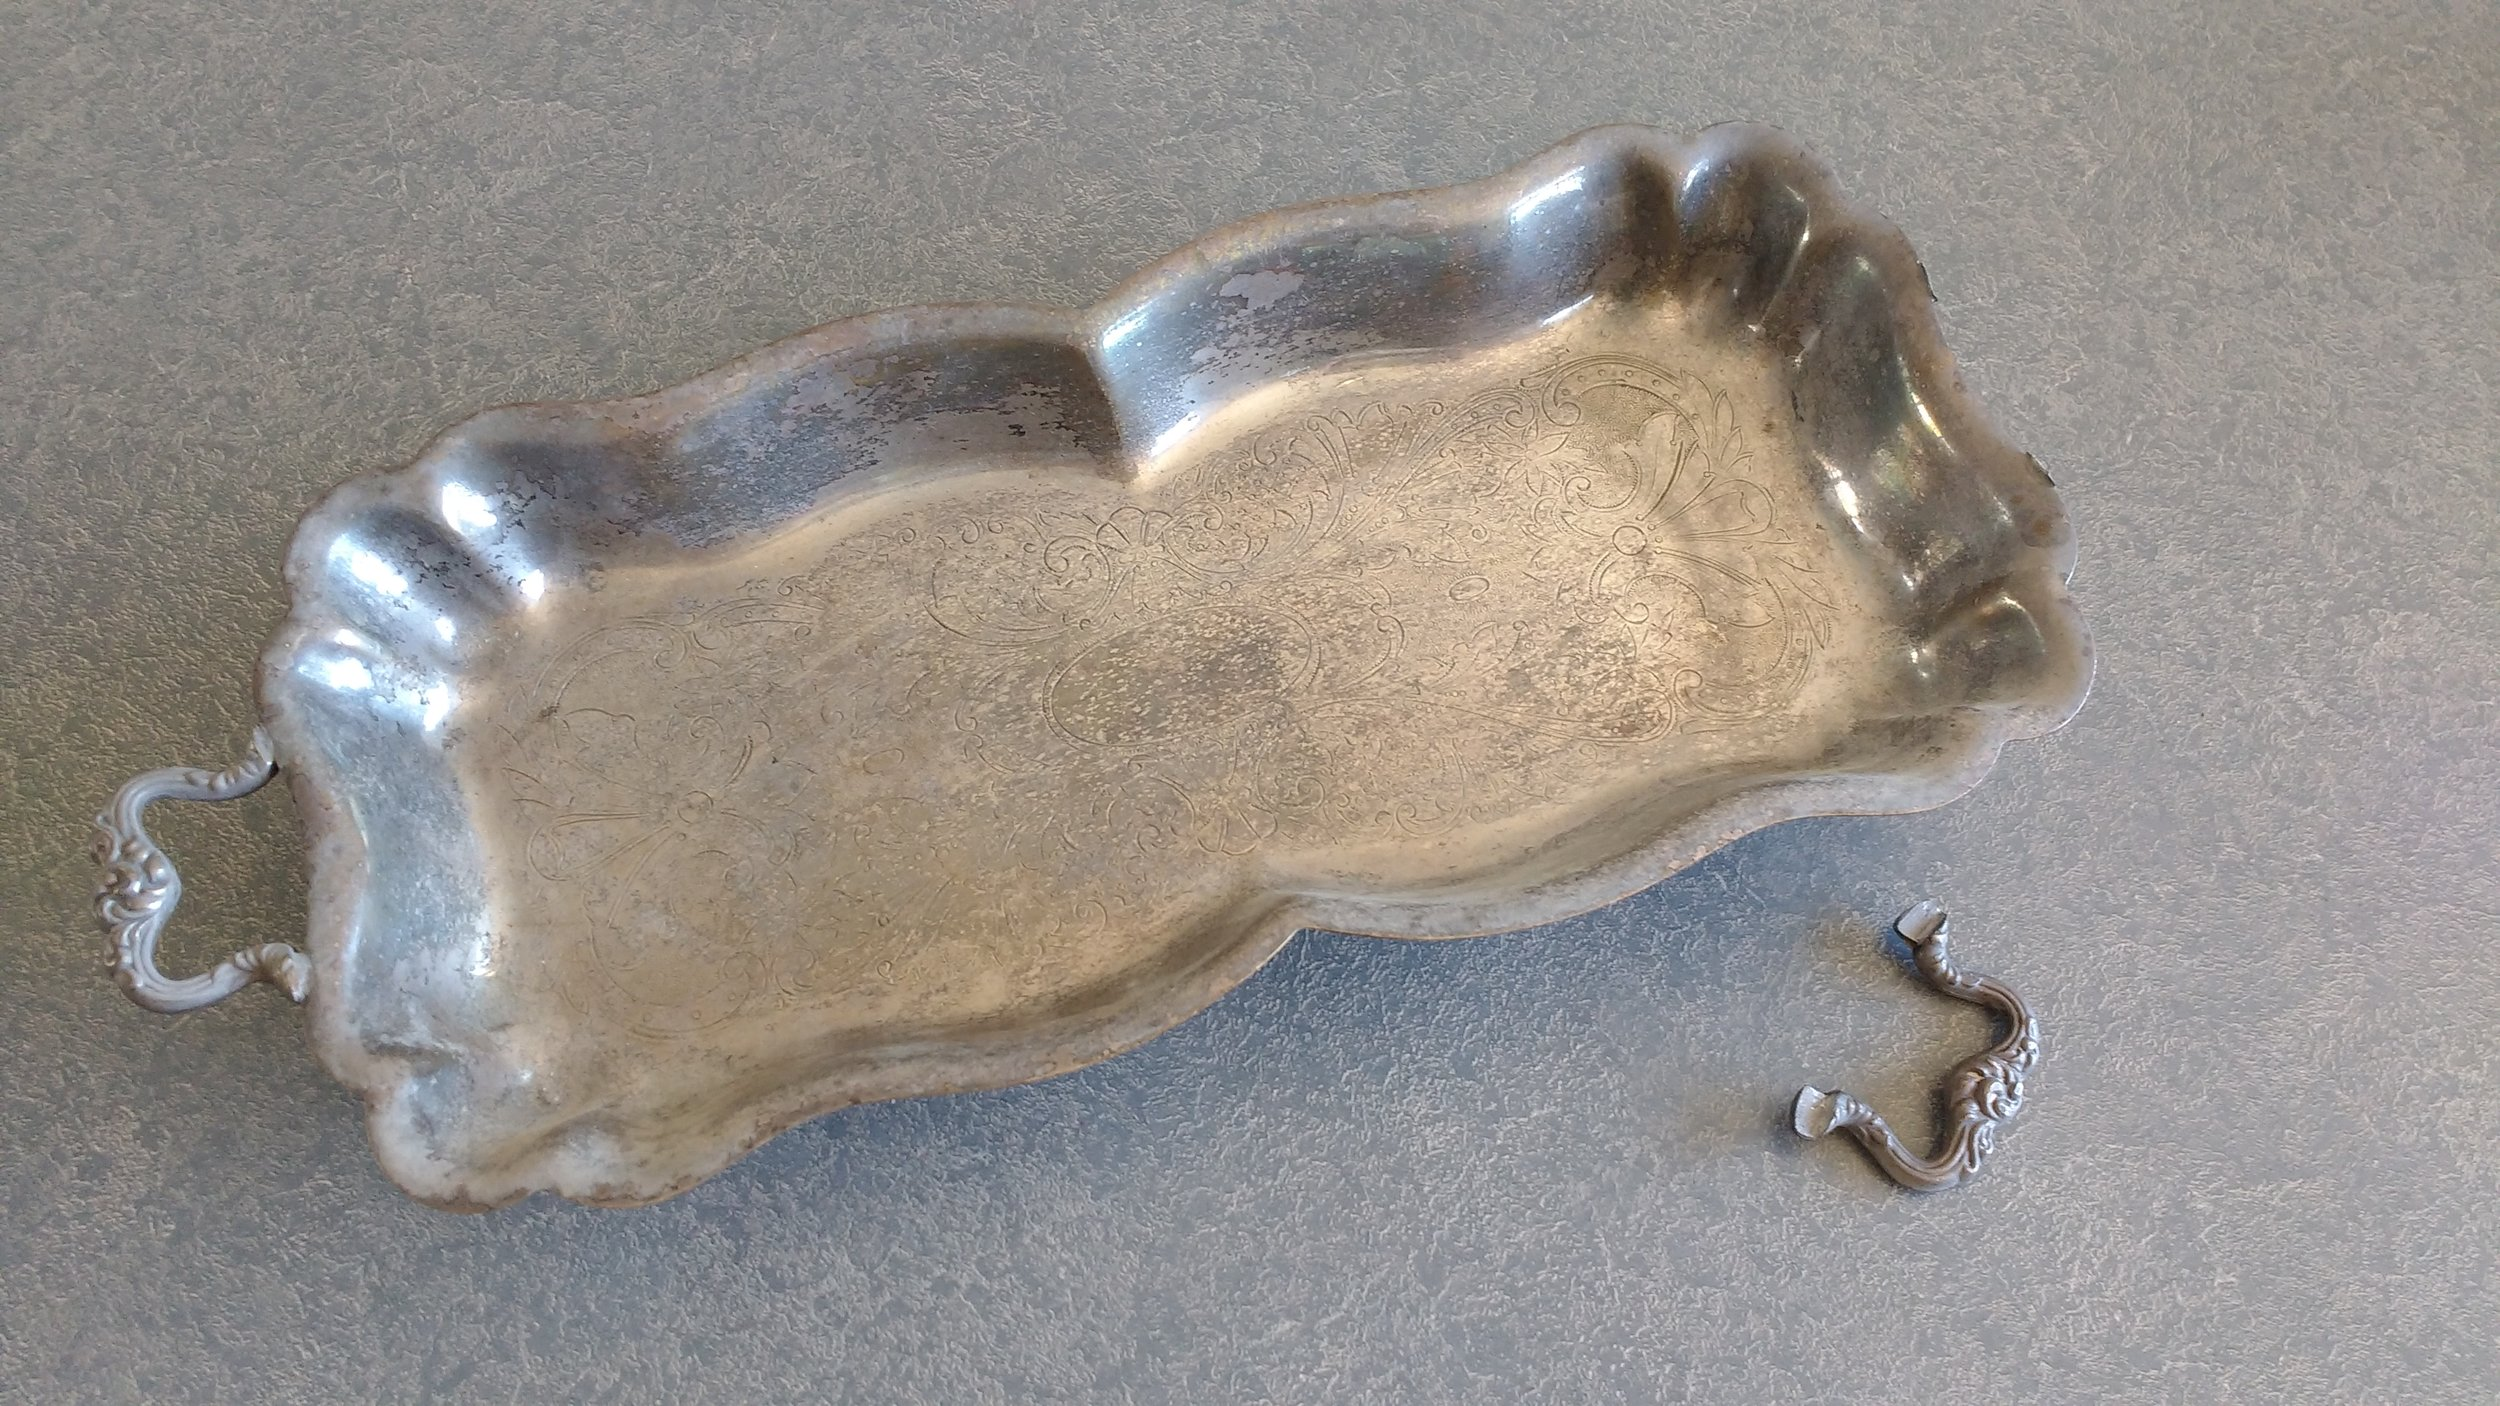 Small silverplate dis with broken handle